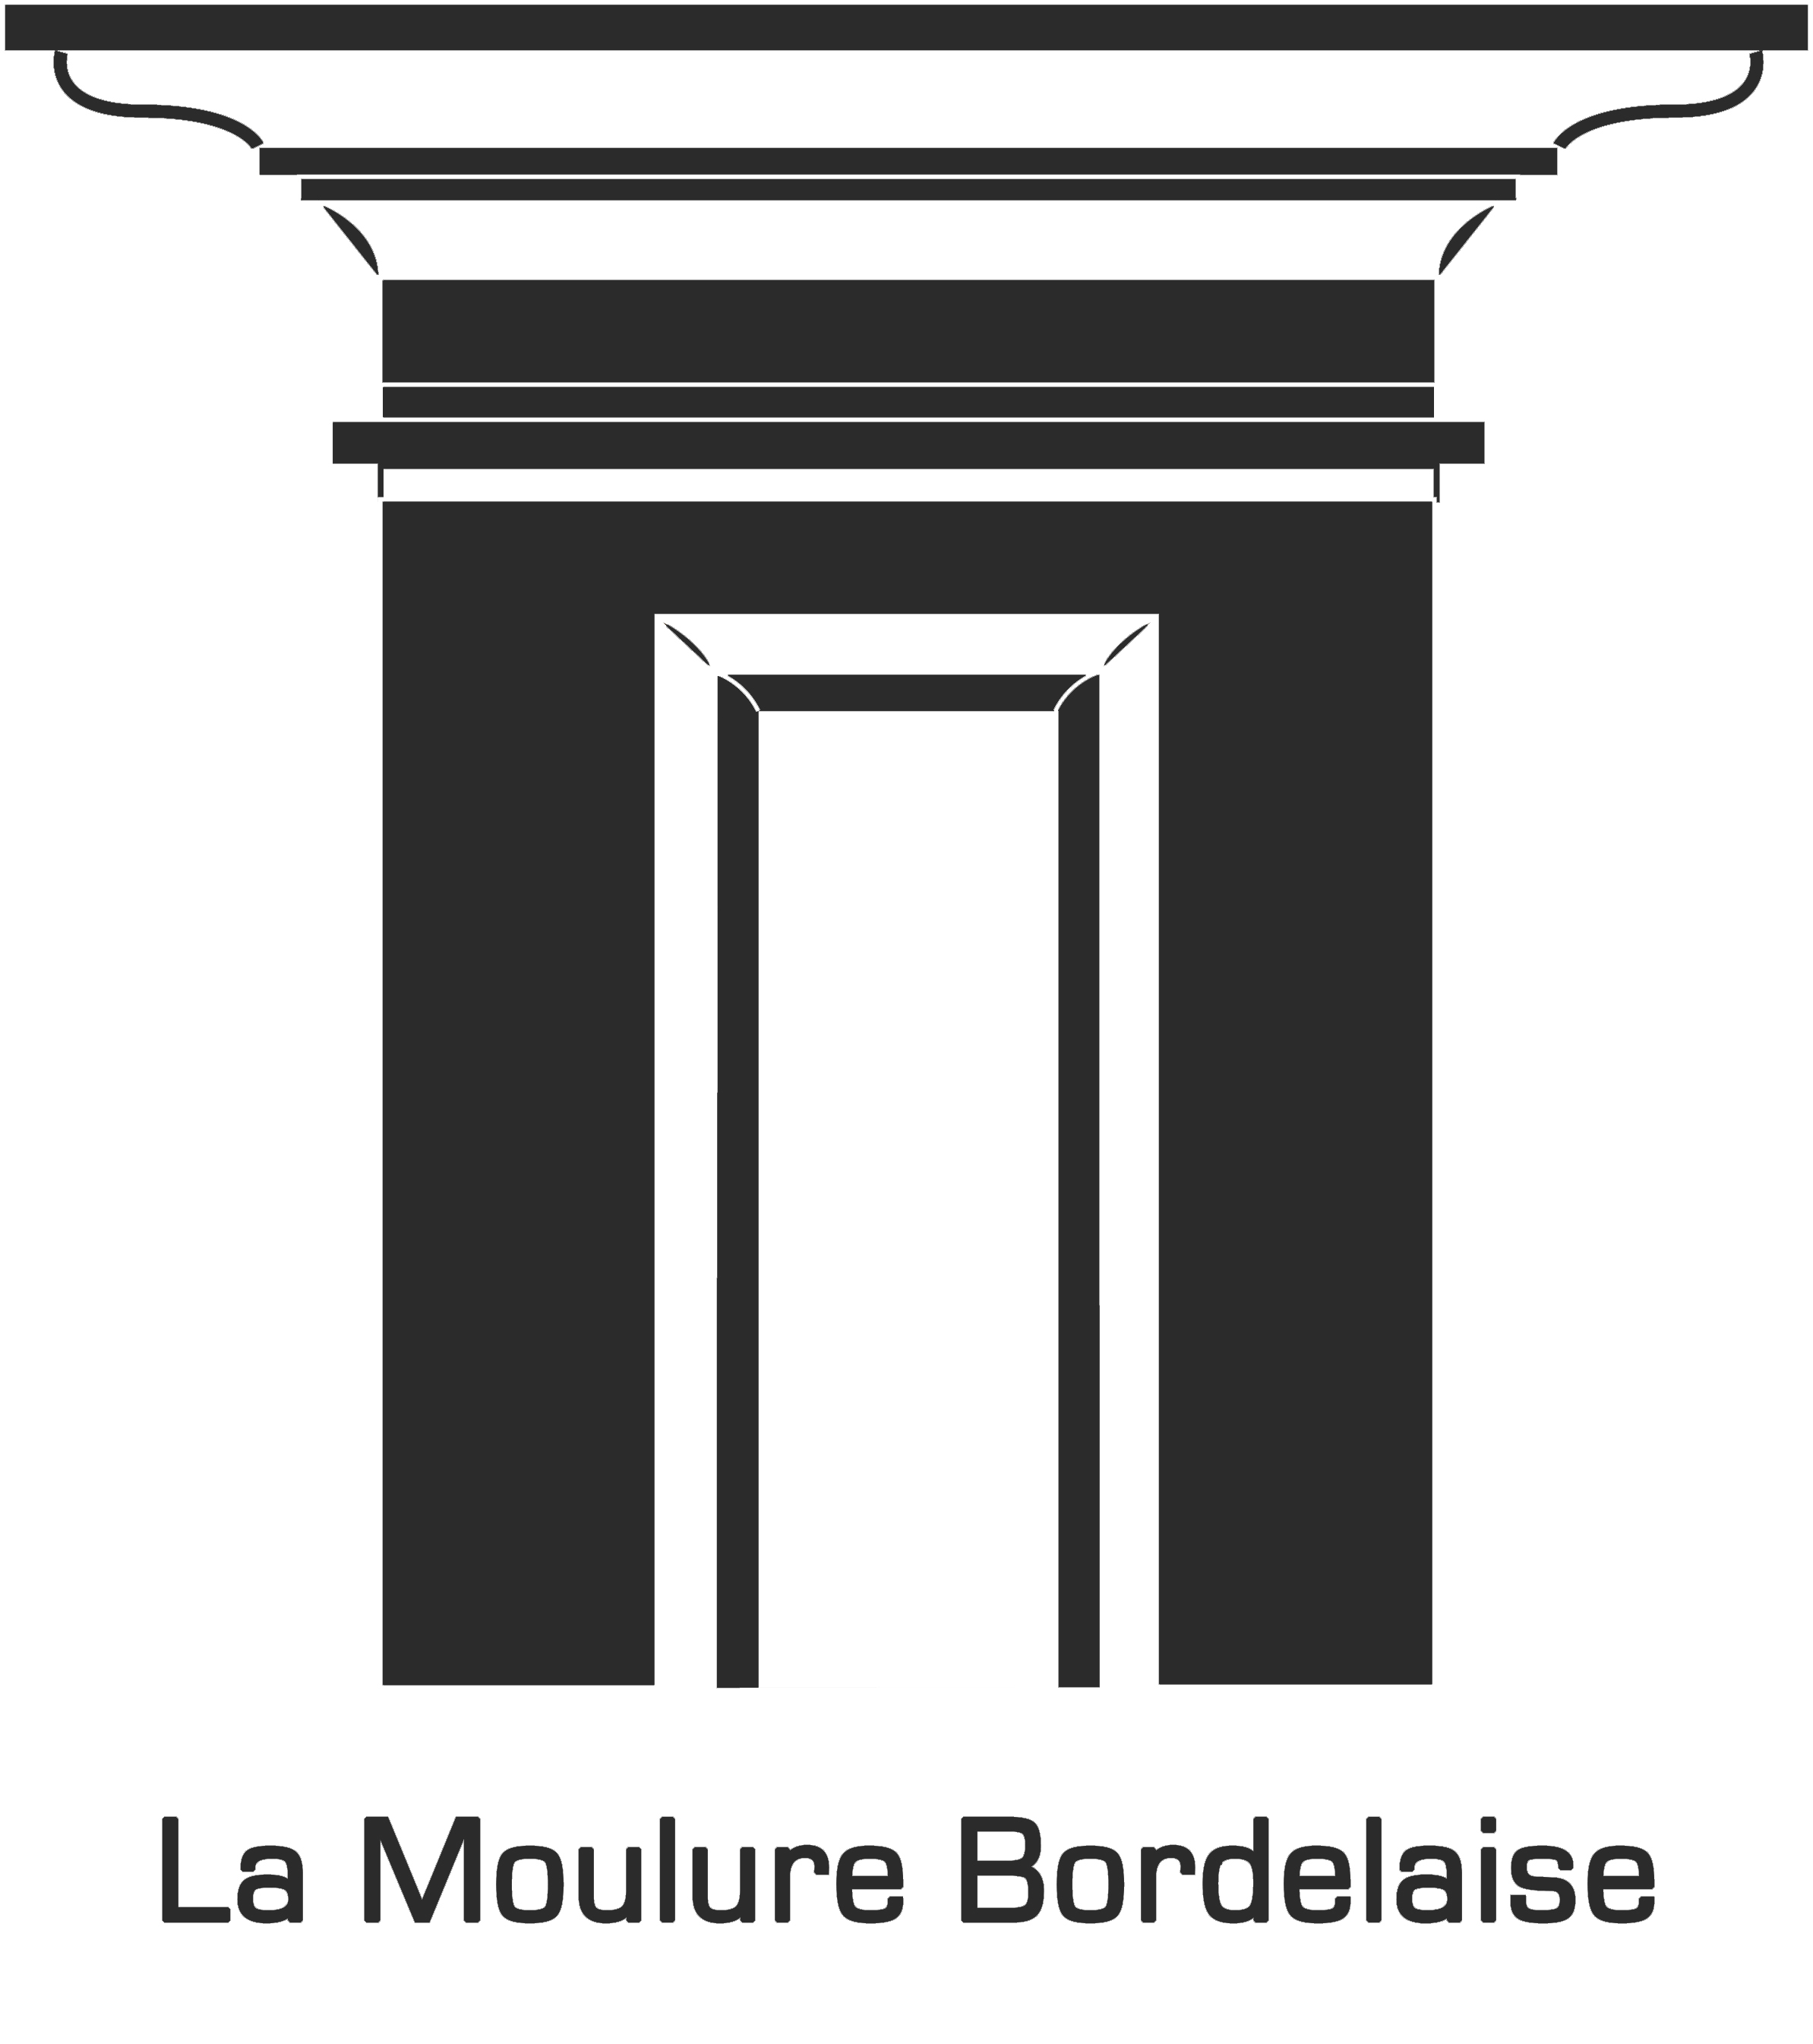 La Moulure Bordelaise